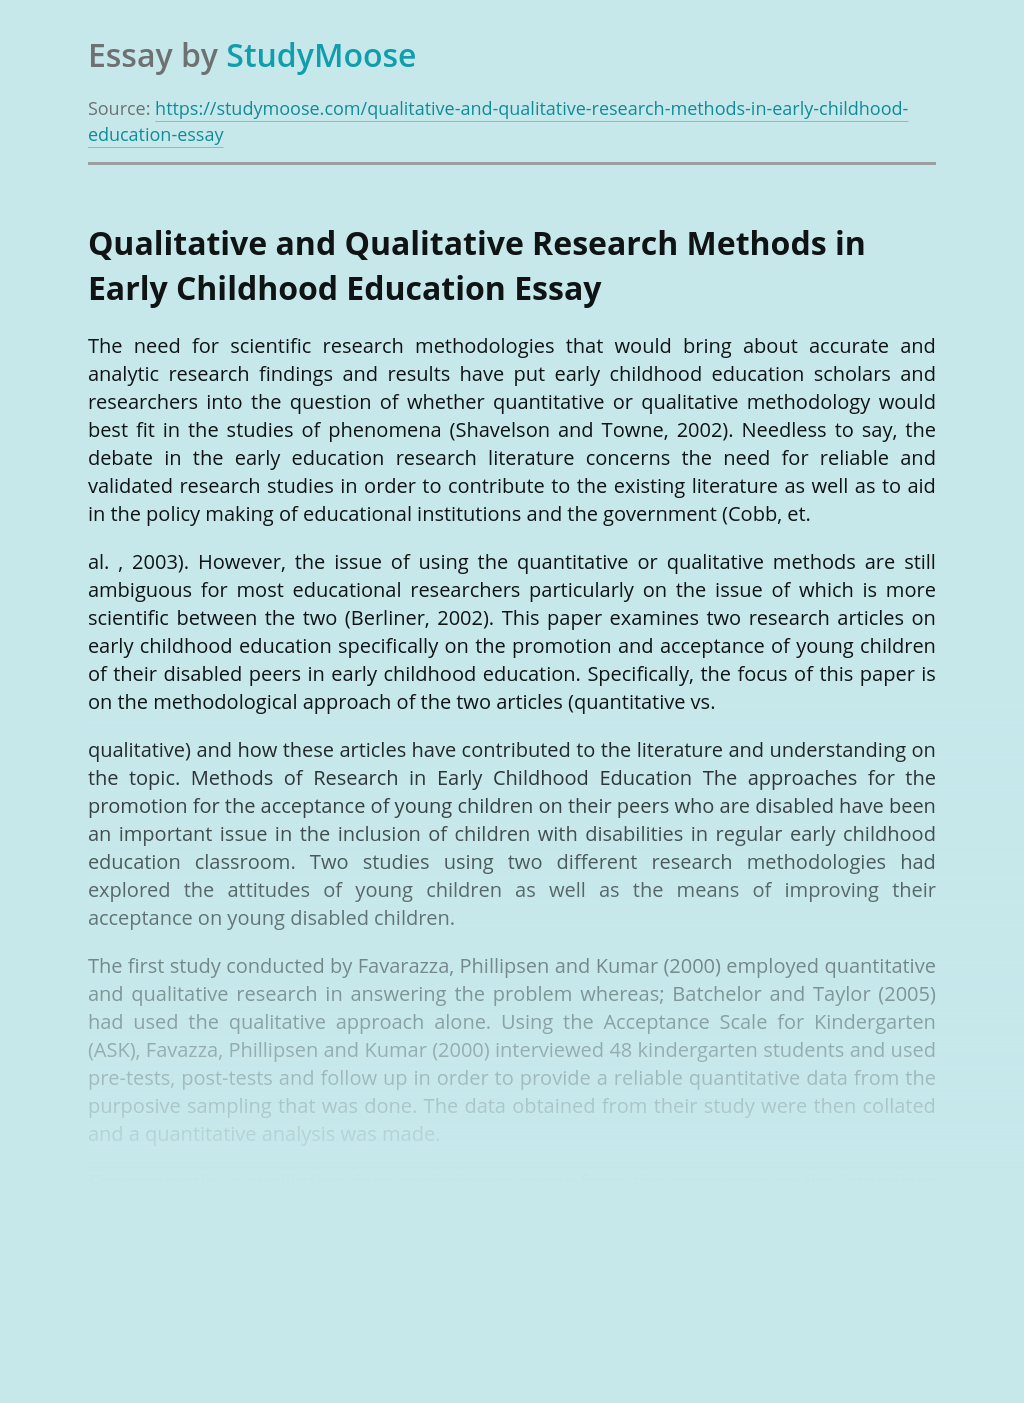 Qualitative and Qualitative Research Methods in Early Childhood Education